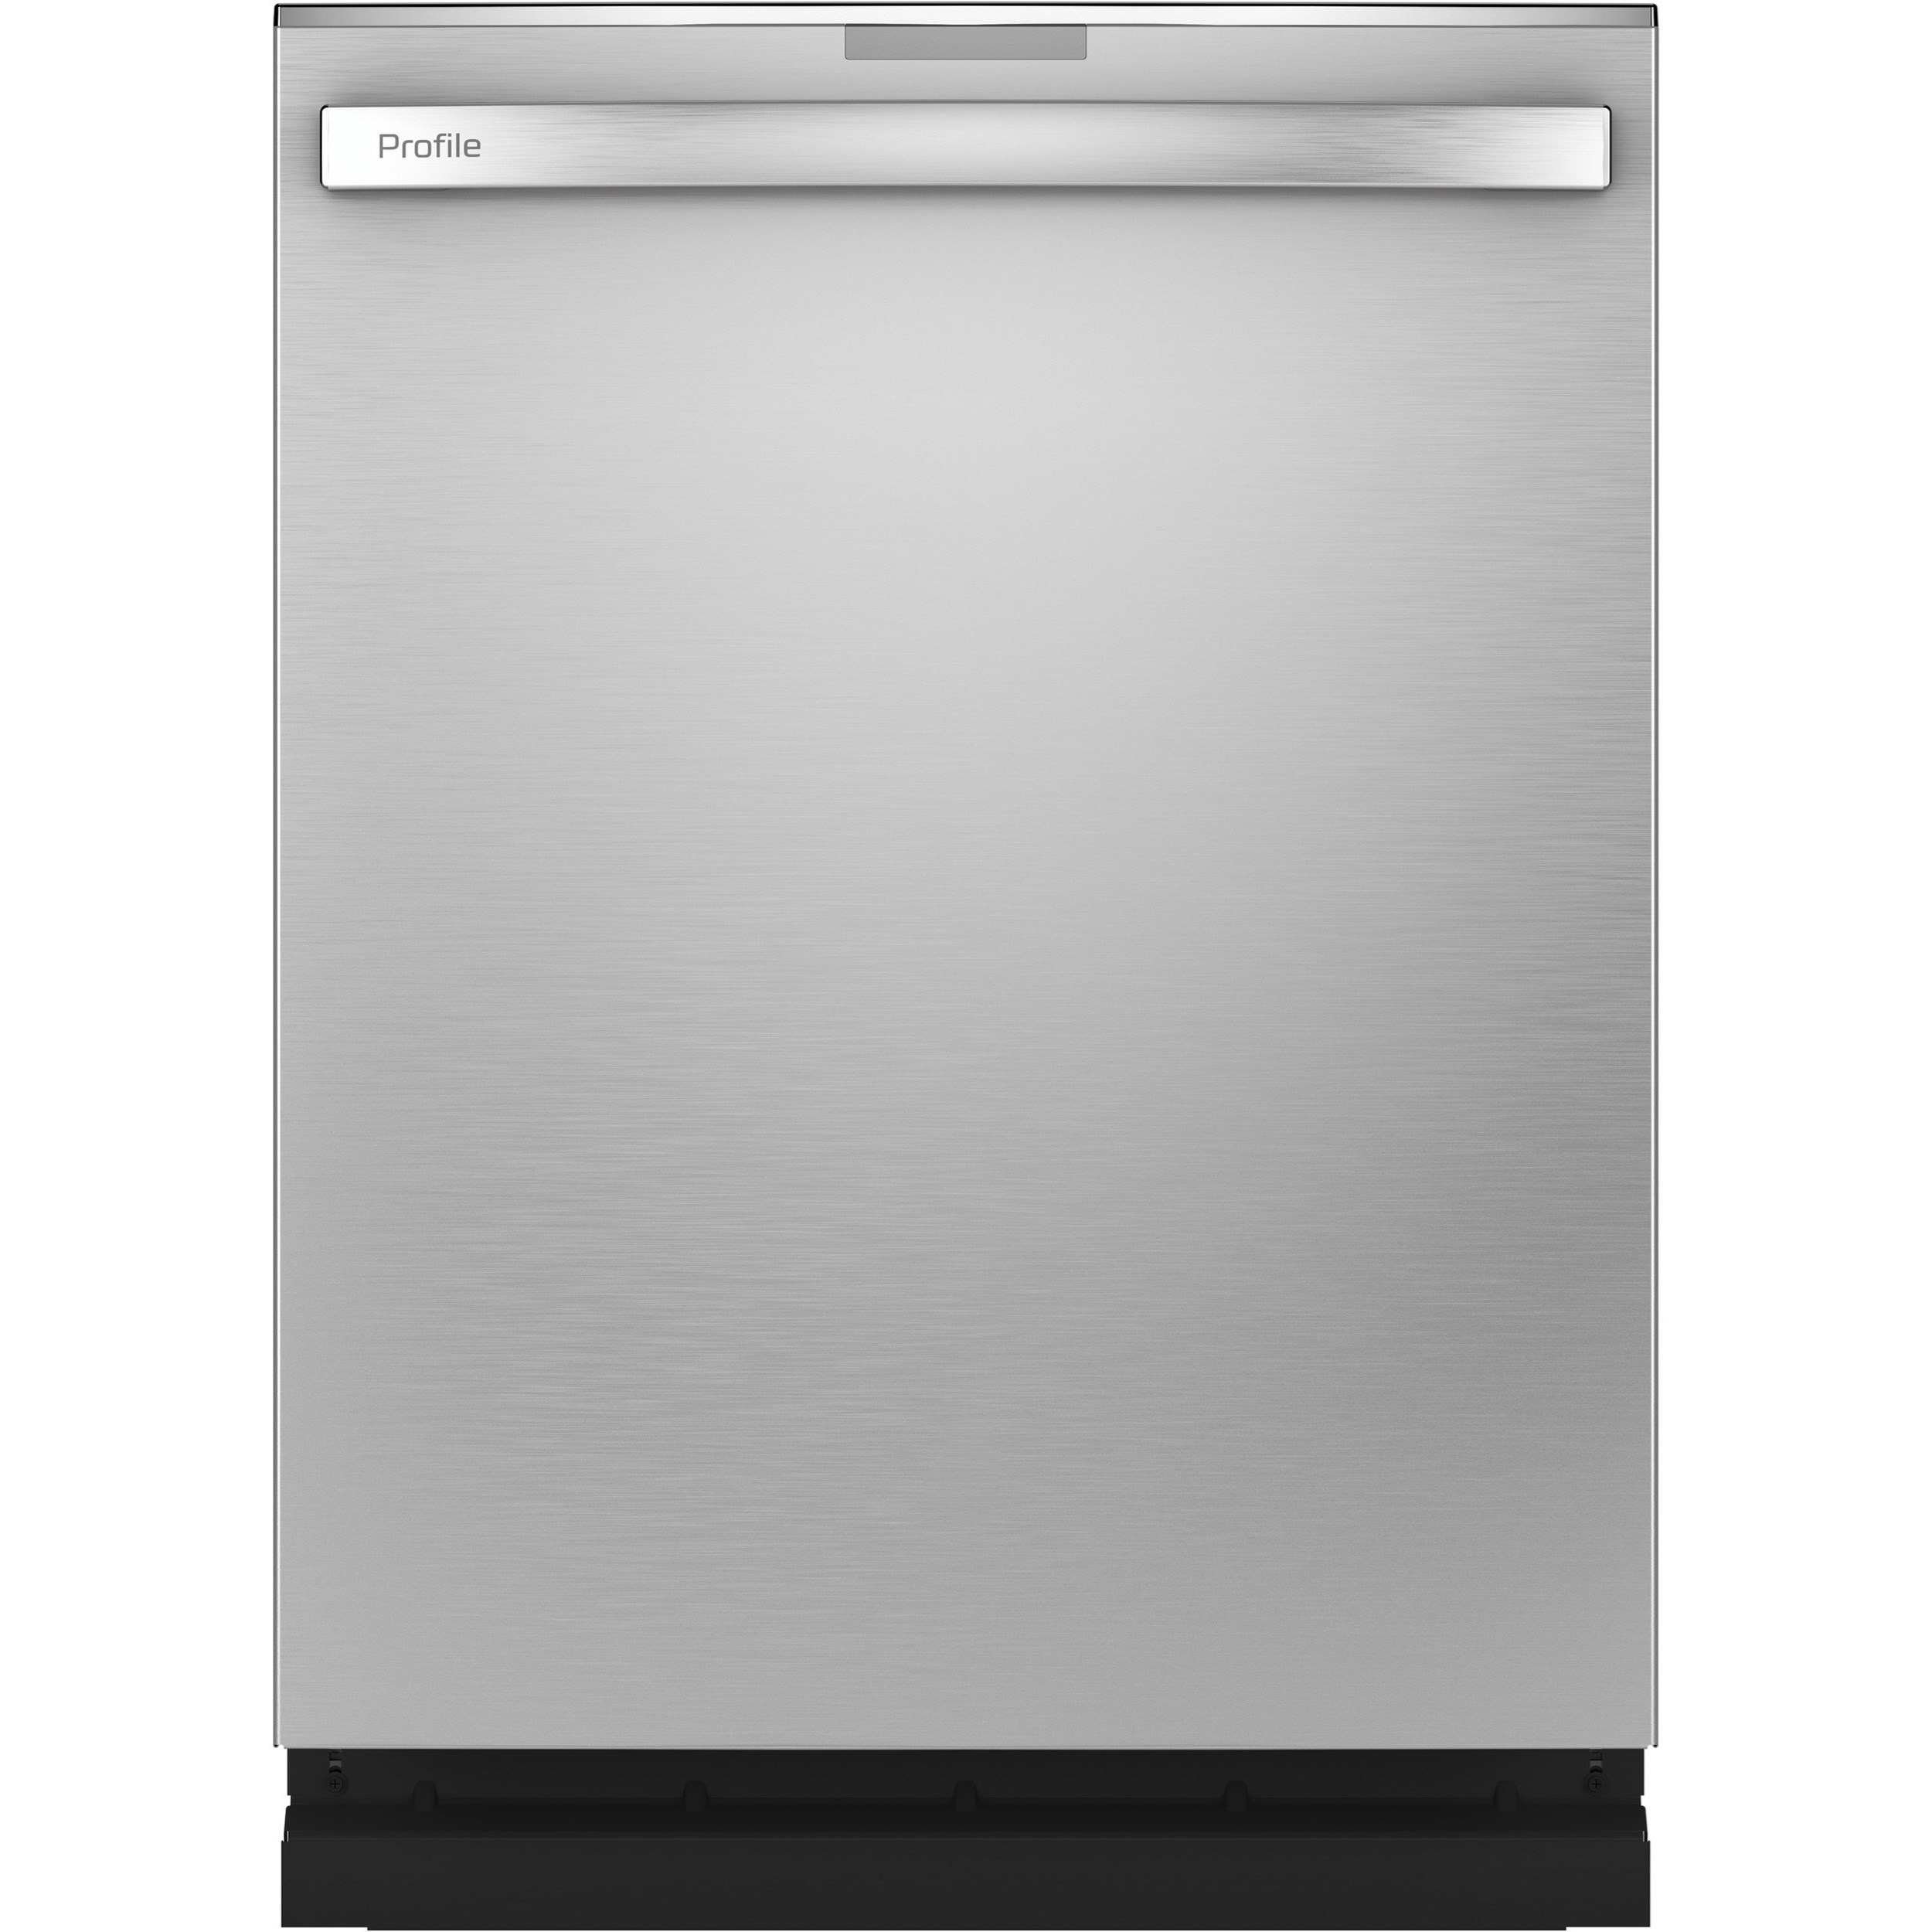 GE Profile Dishwashers GE Profile™ Dishwasher with Hidden Controls by GE Appliances at Furniture and ApplianceMart